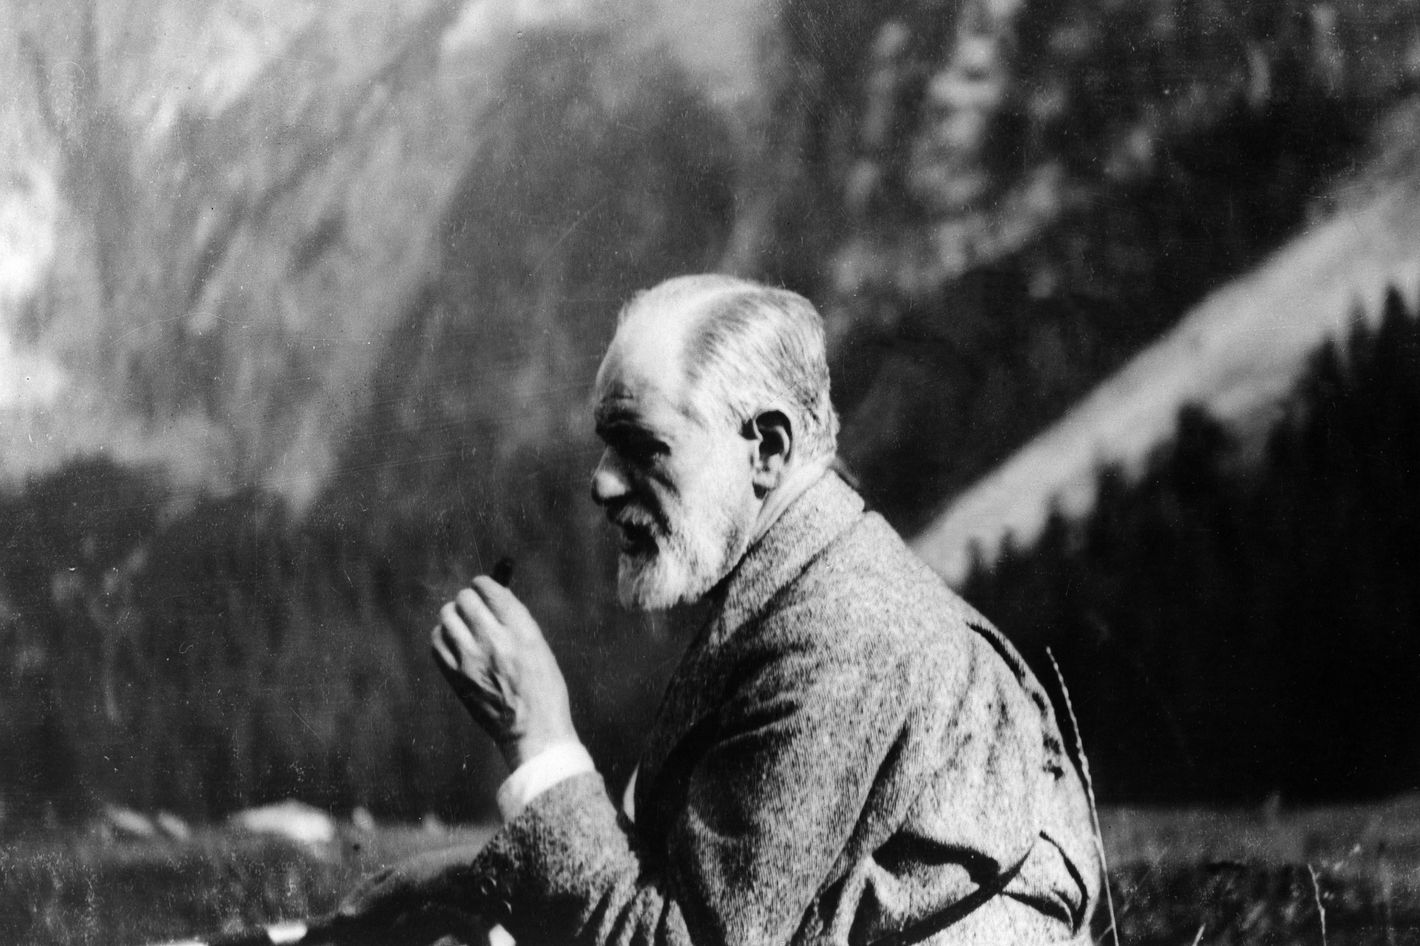 freud psychoanalysis and symbolism pdf sigmund freud 1920 a general introduction to psychoanalysis